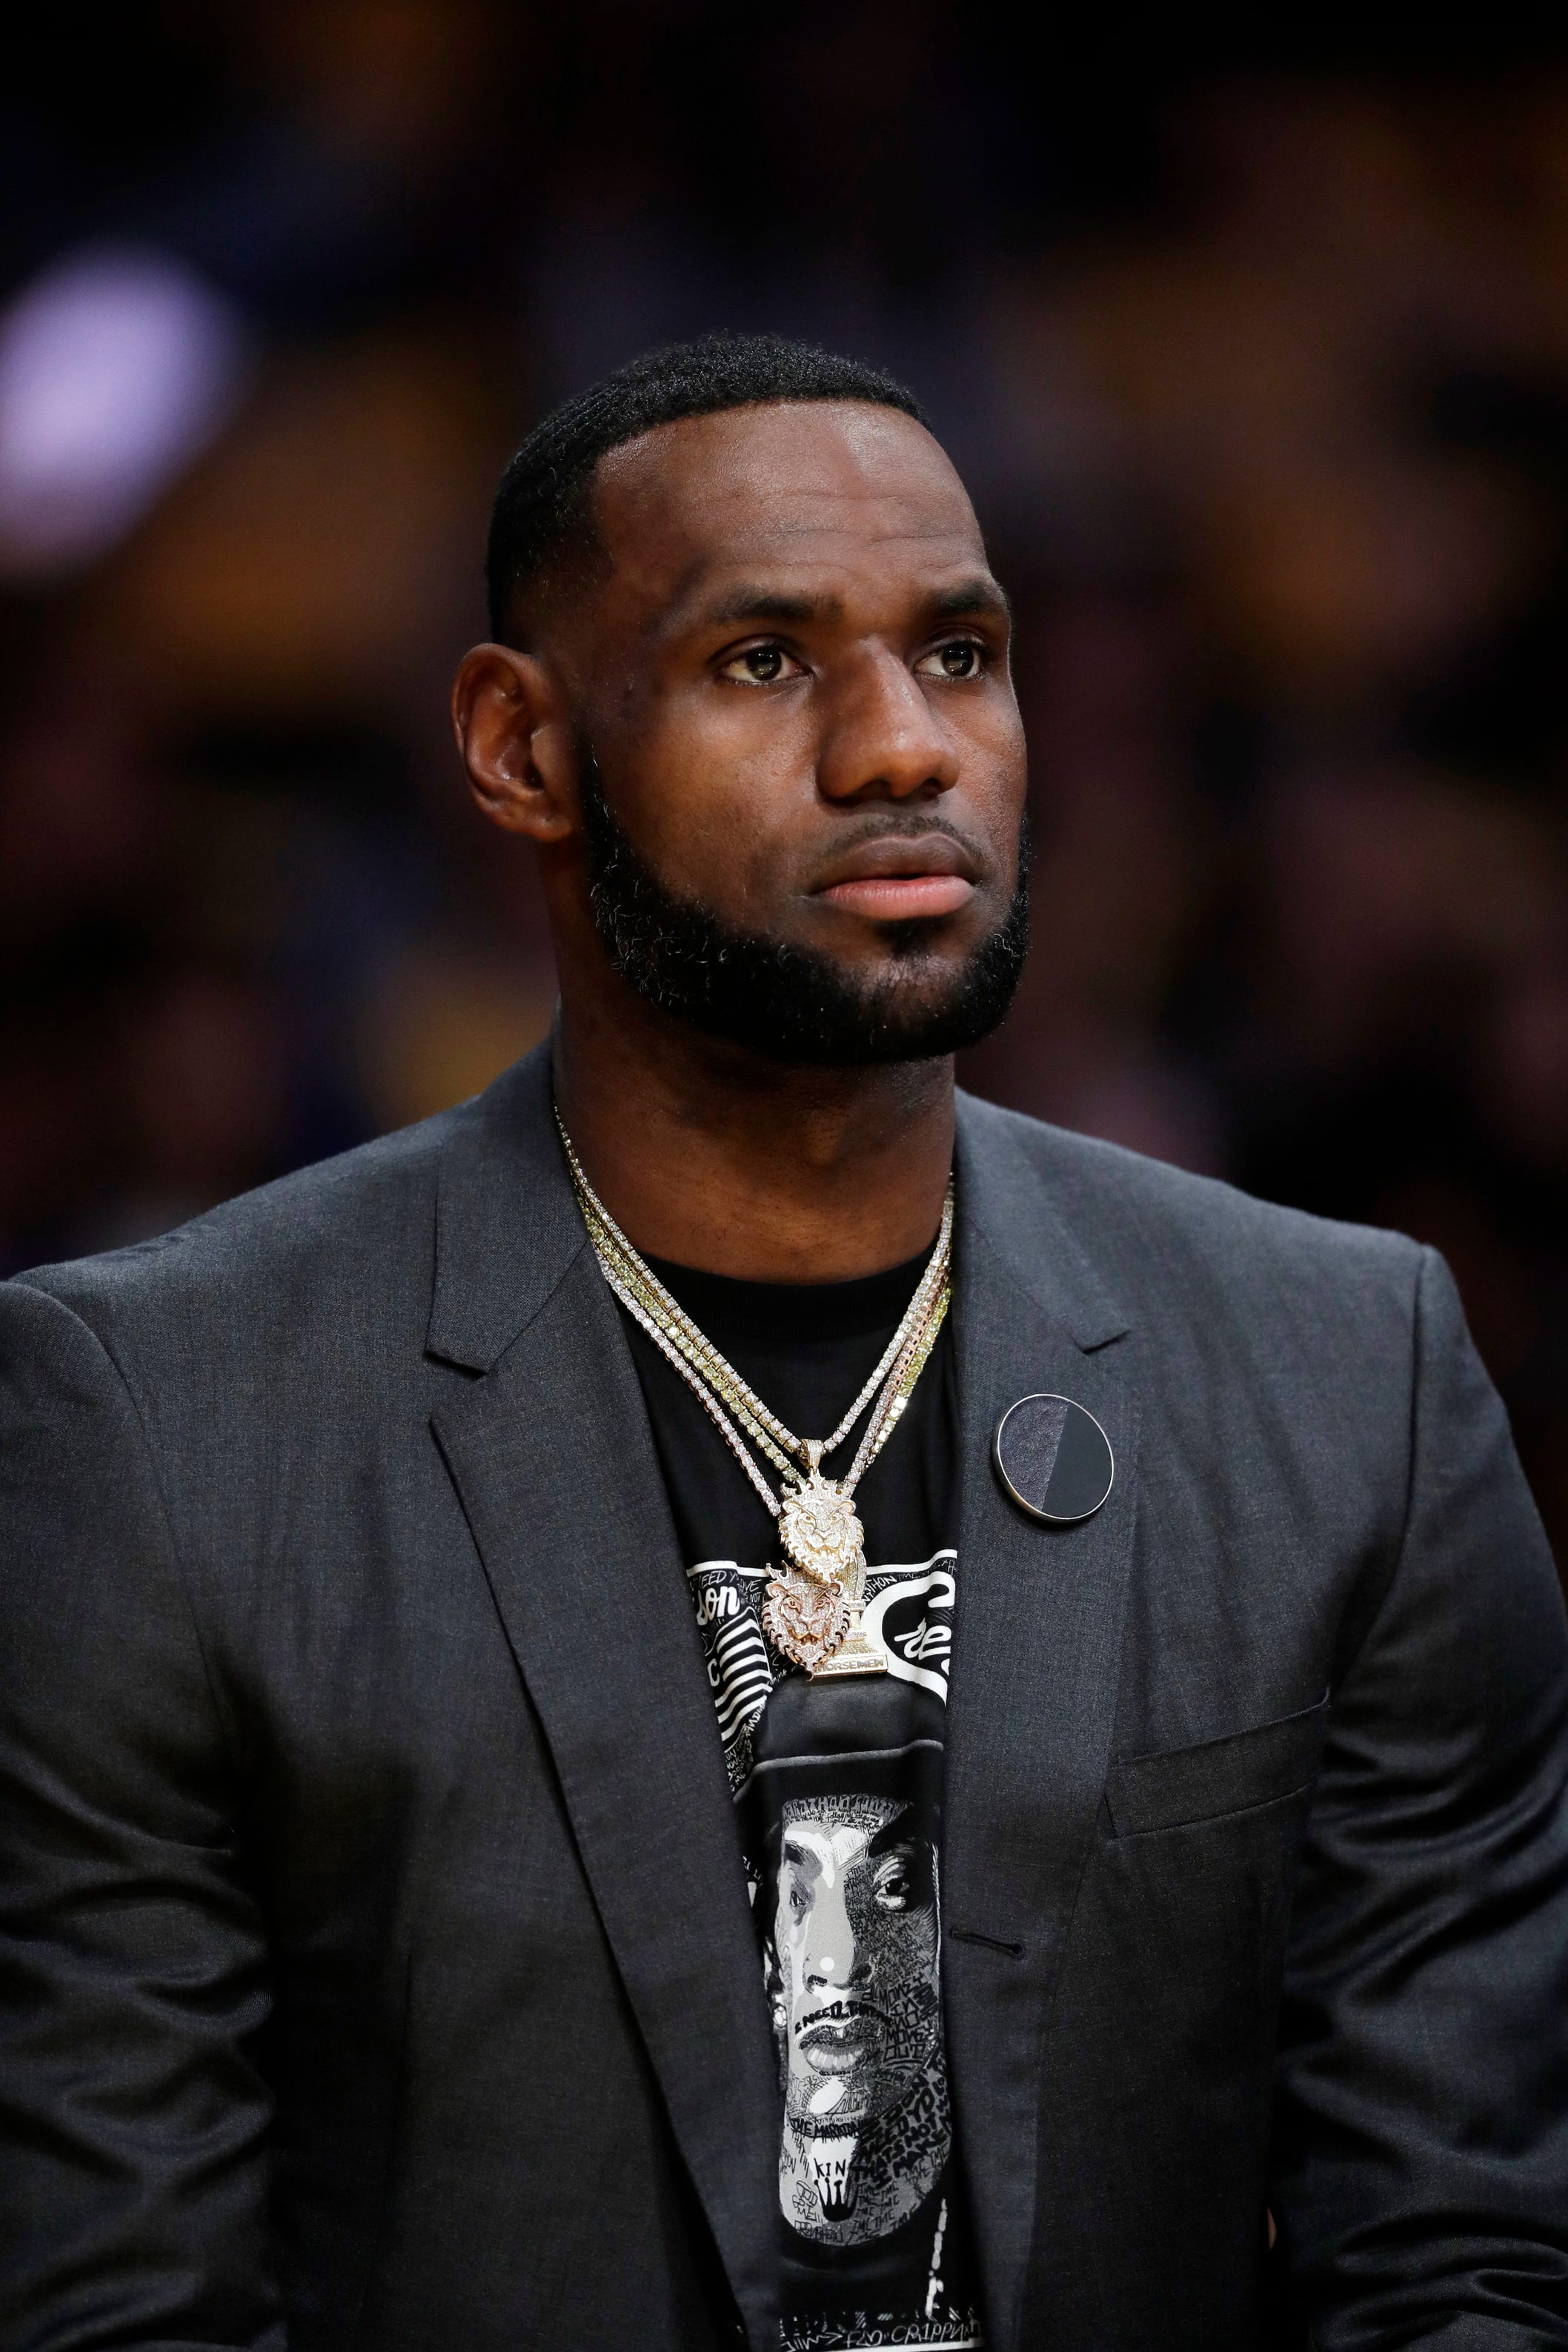 c30761ff471 ... 2019 LeBron James to be executive producer of boxing series. USA TODAY  - 09:00 AM ET April 17, ...